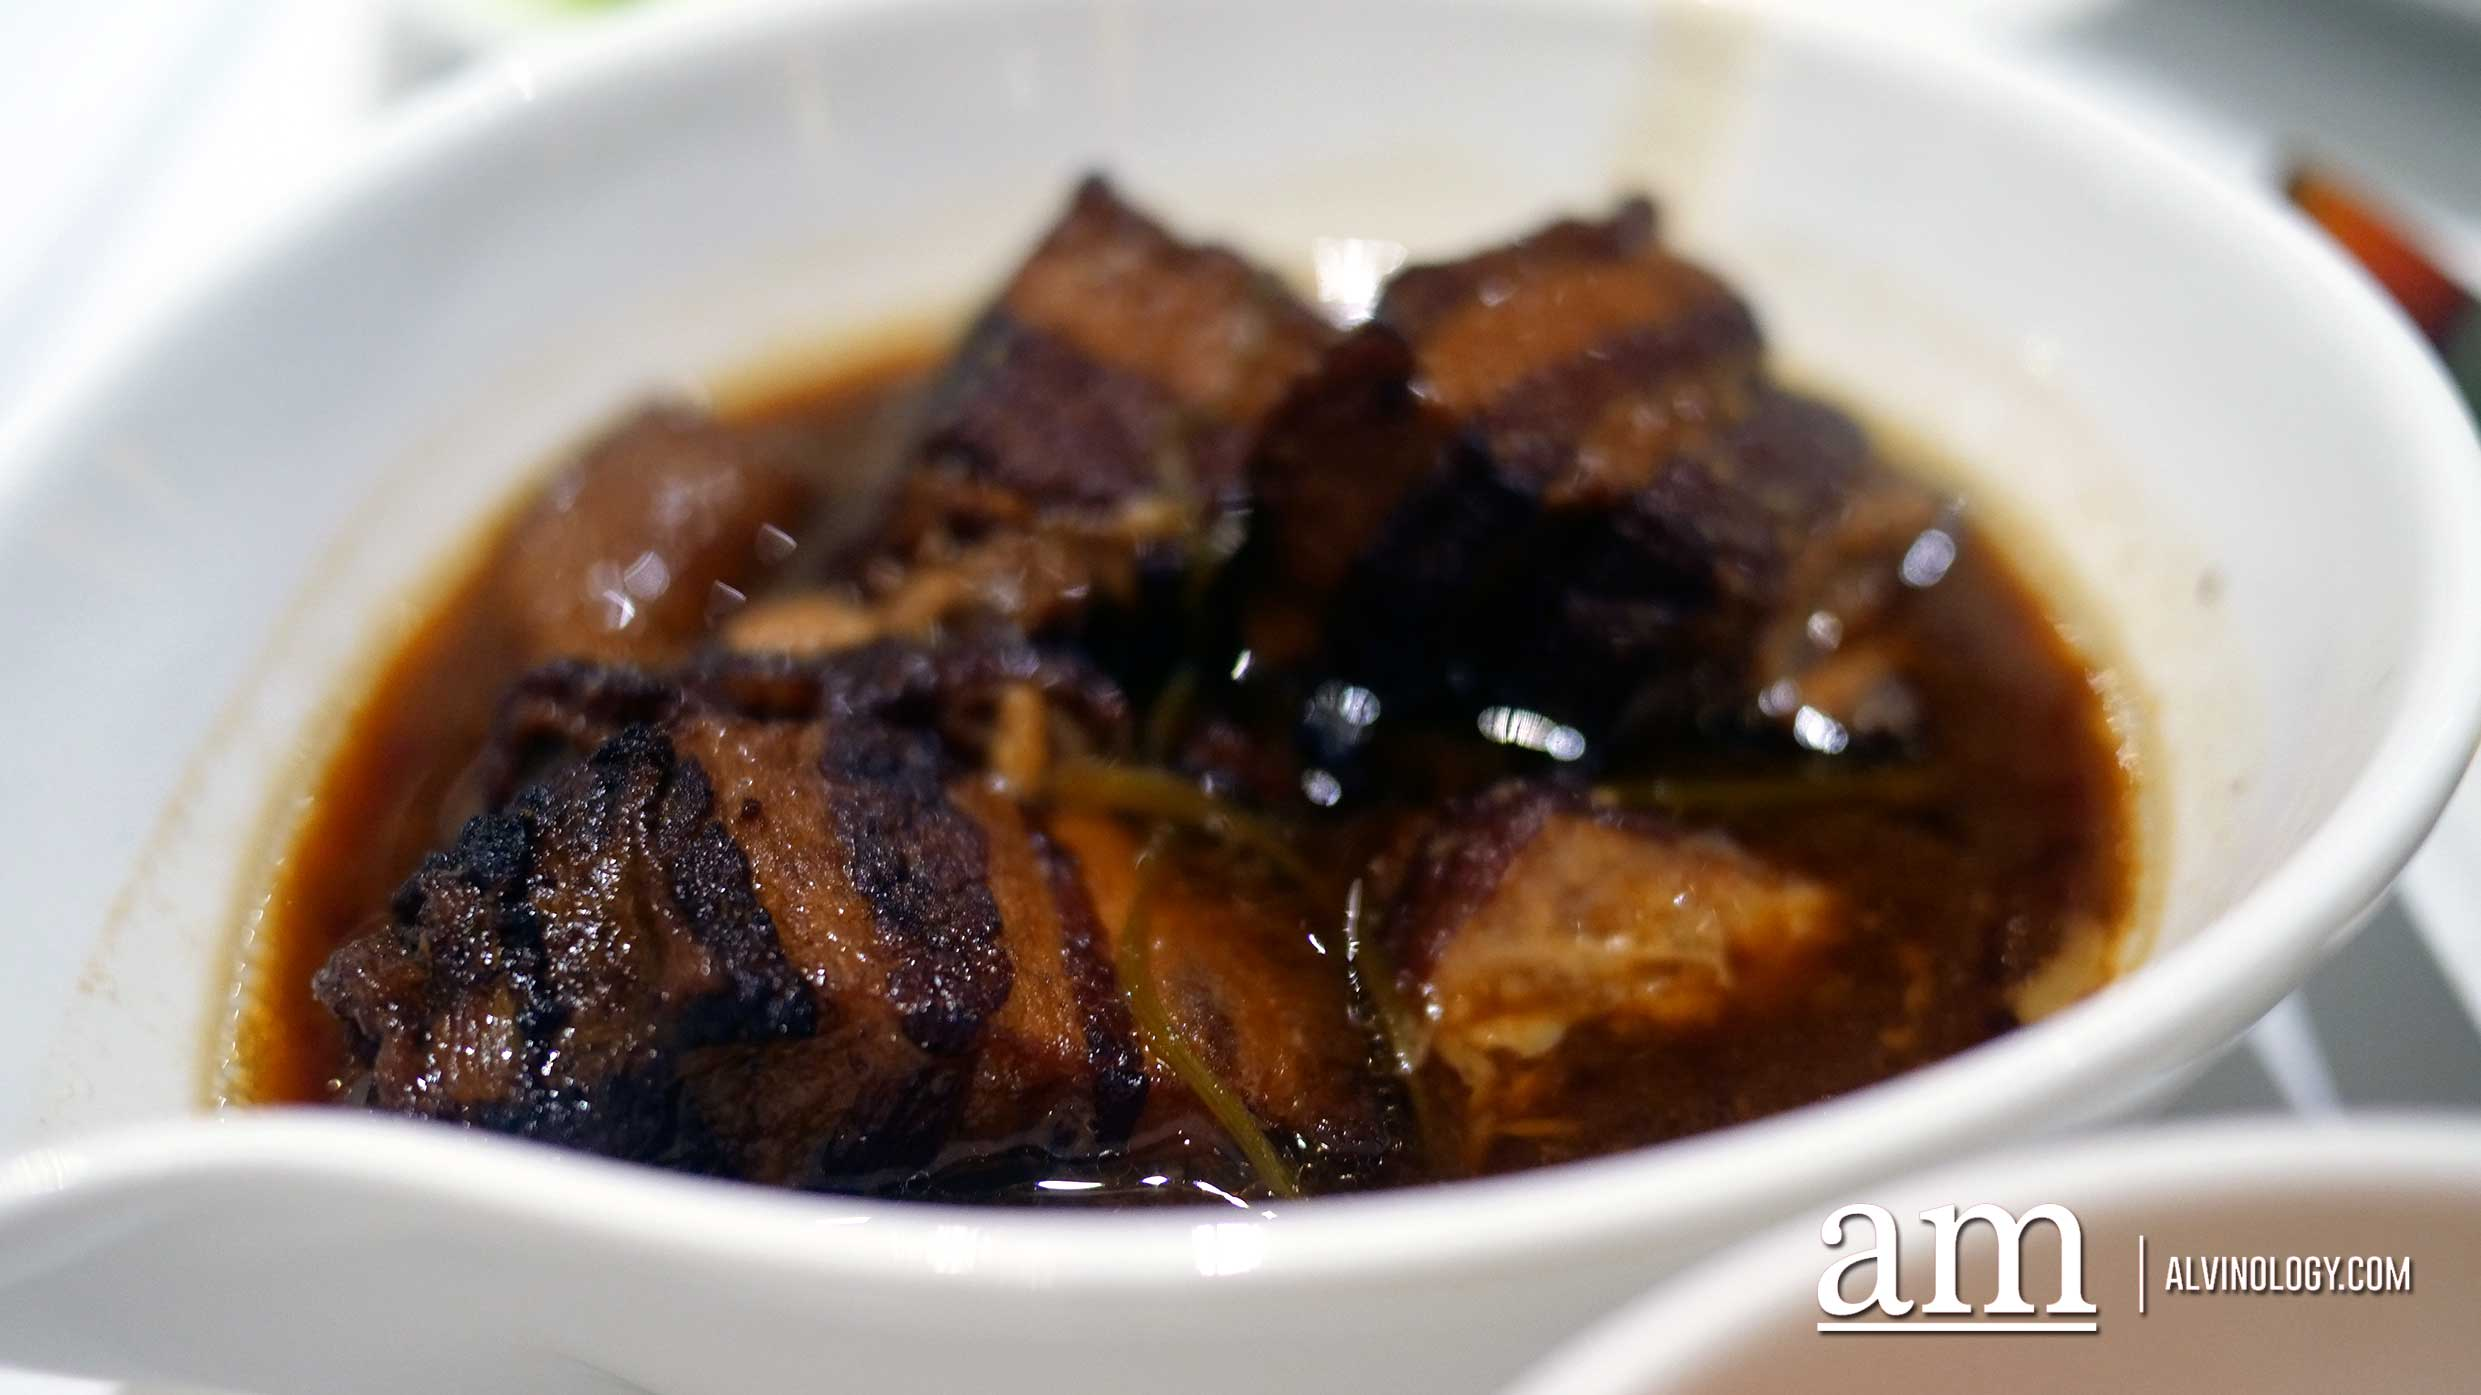 Braised Pork Belly with Dark Soy Sauce 京酱扣肉 ($15++)